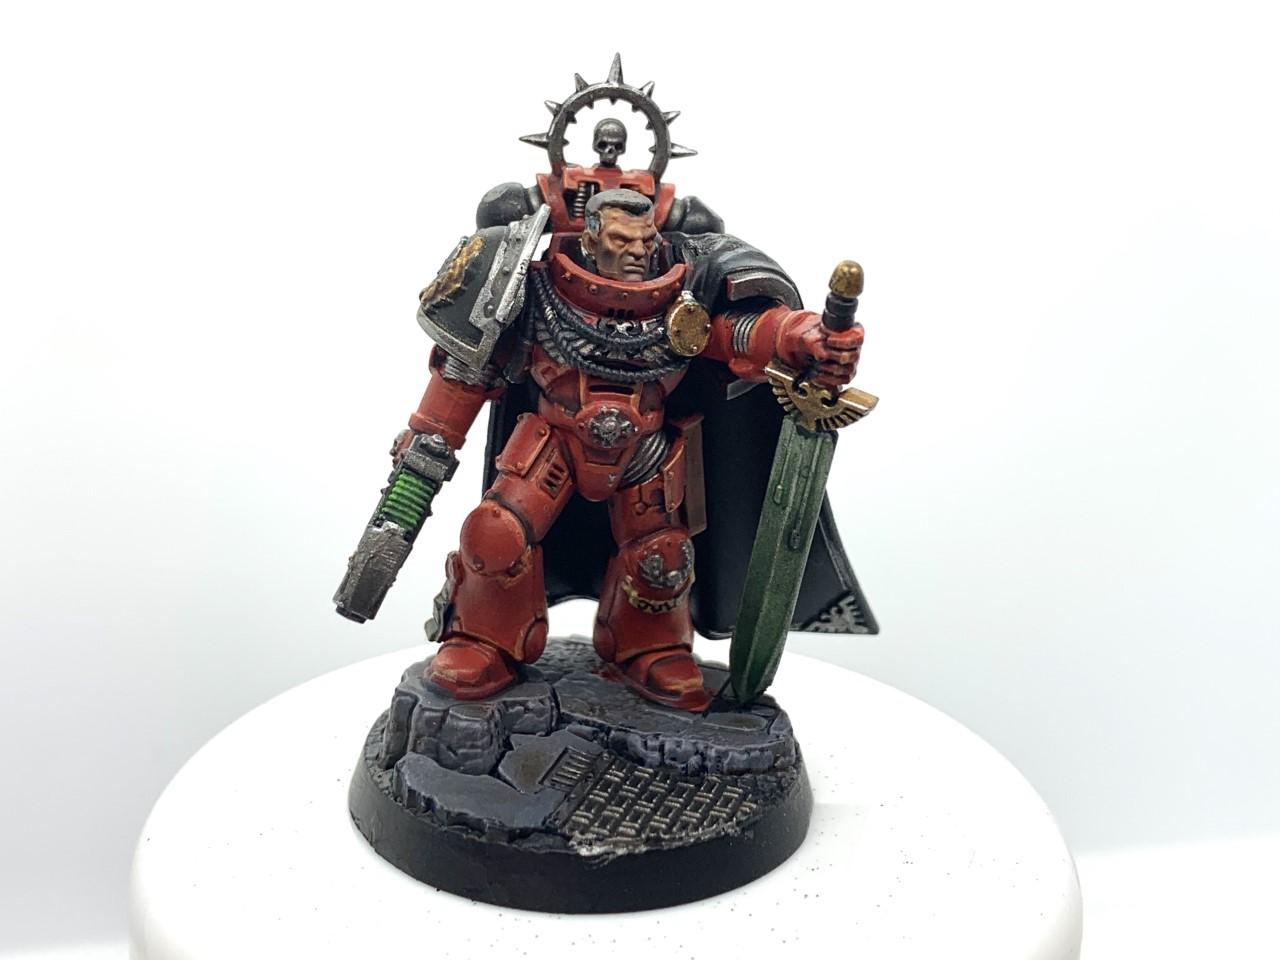 Brothers Penitent, Brothers Penitent Space Marines, Captain, Chapter, Mk Vii Armor, Space Marine Heroes, Warhammer 40,000